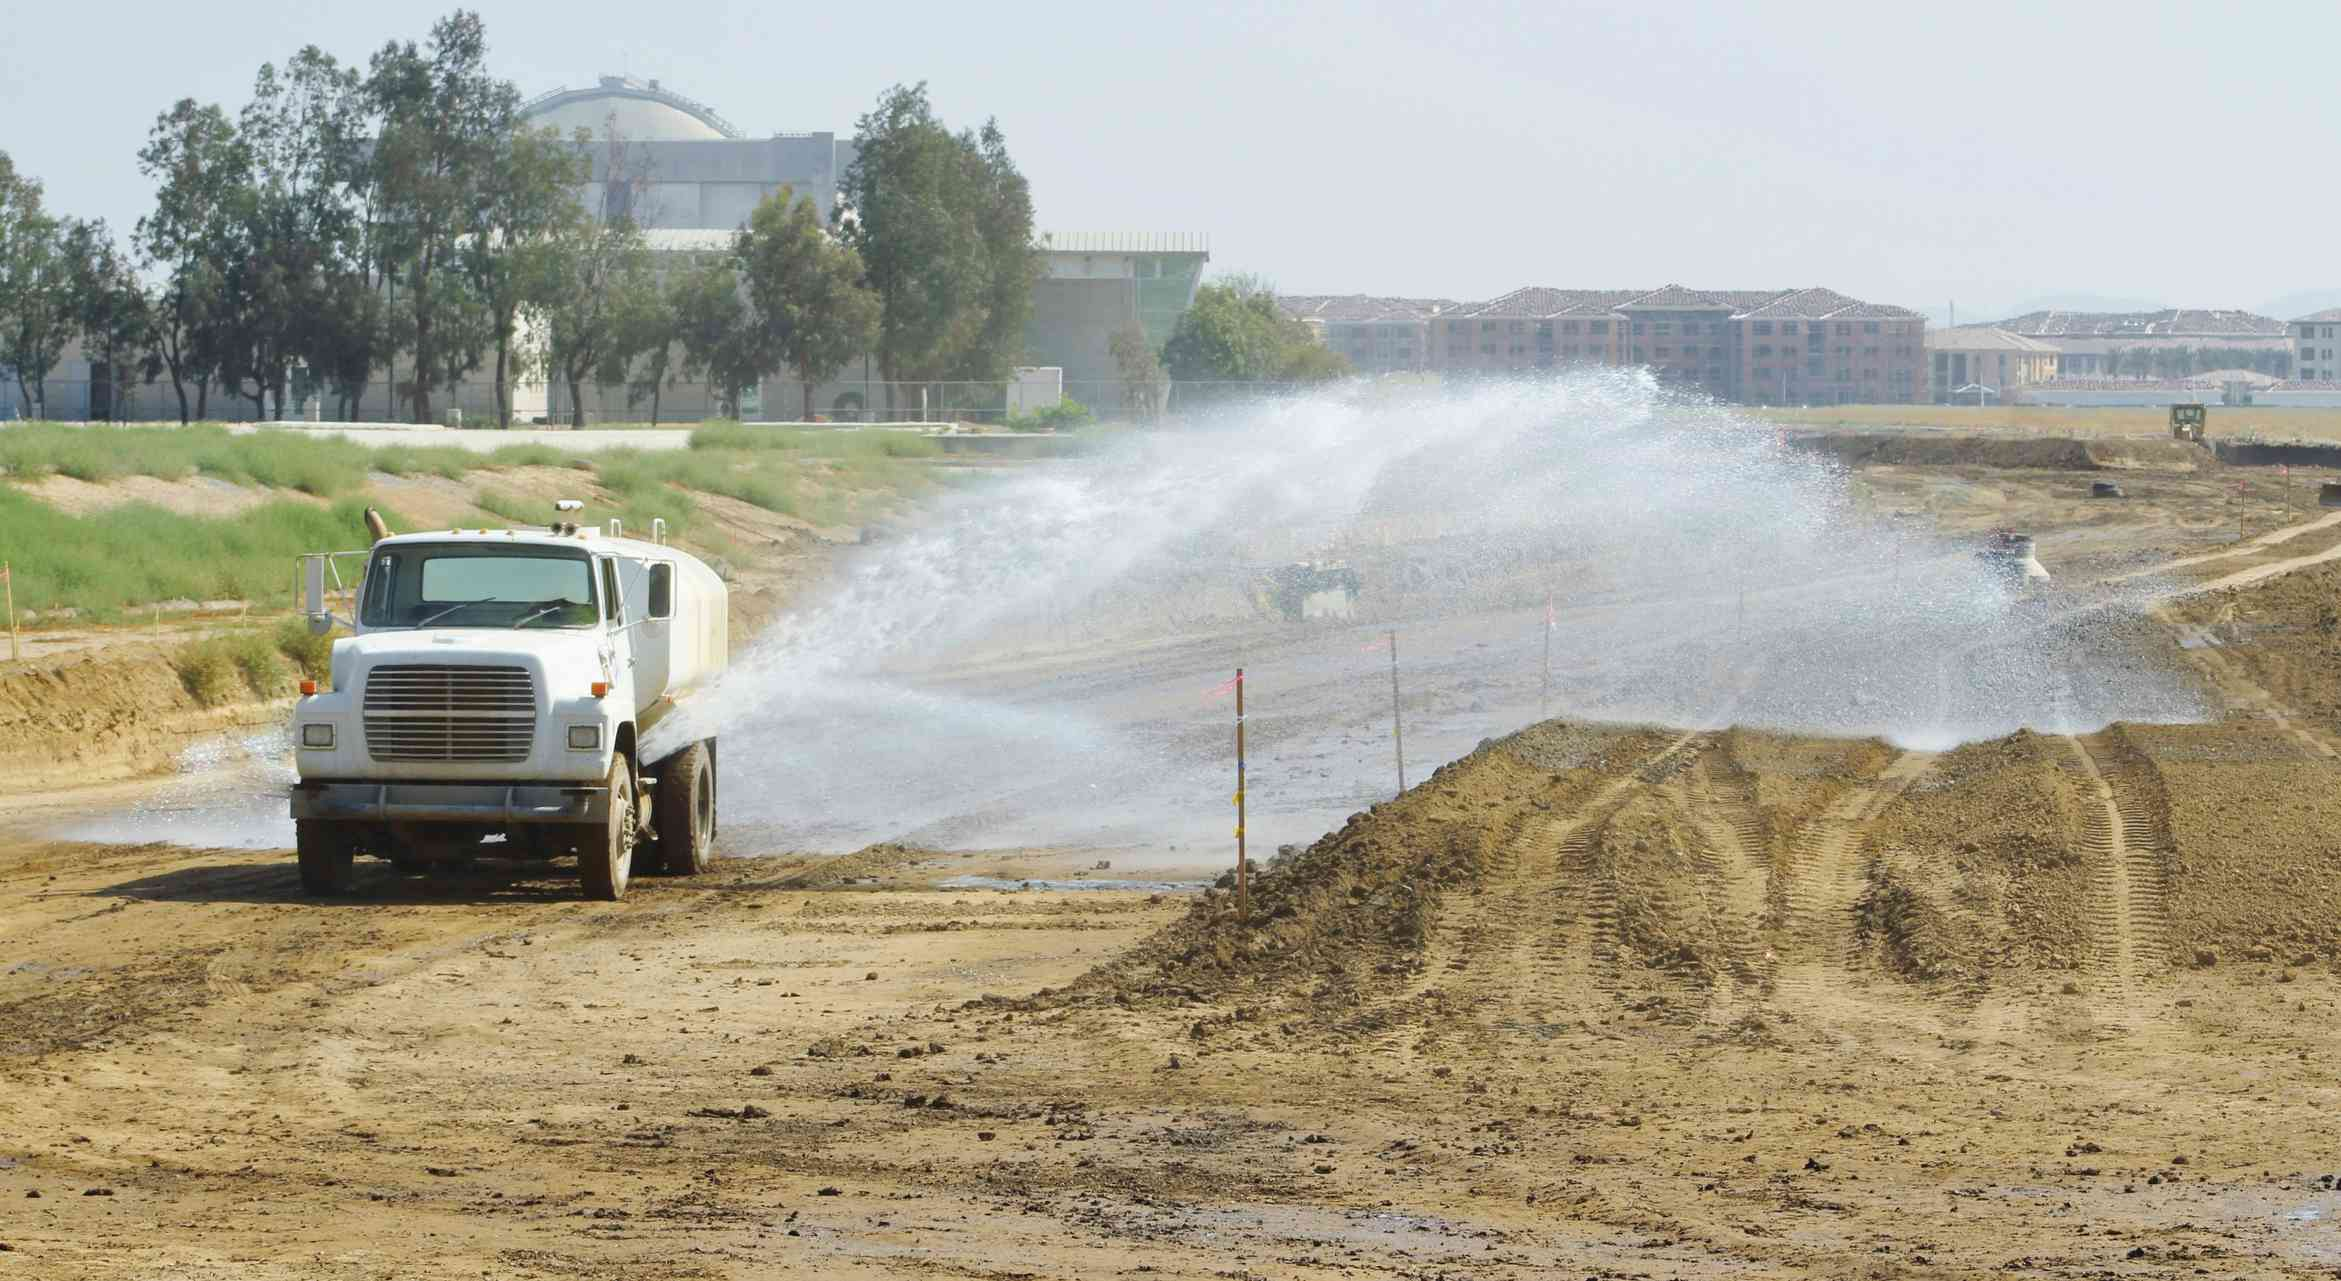 A truck spraying water onto dirt on a construction site.